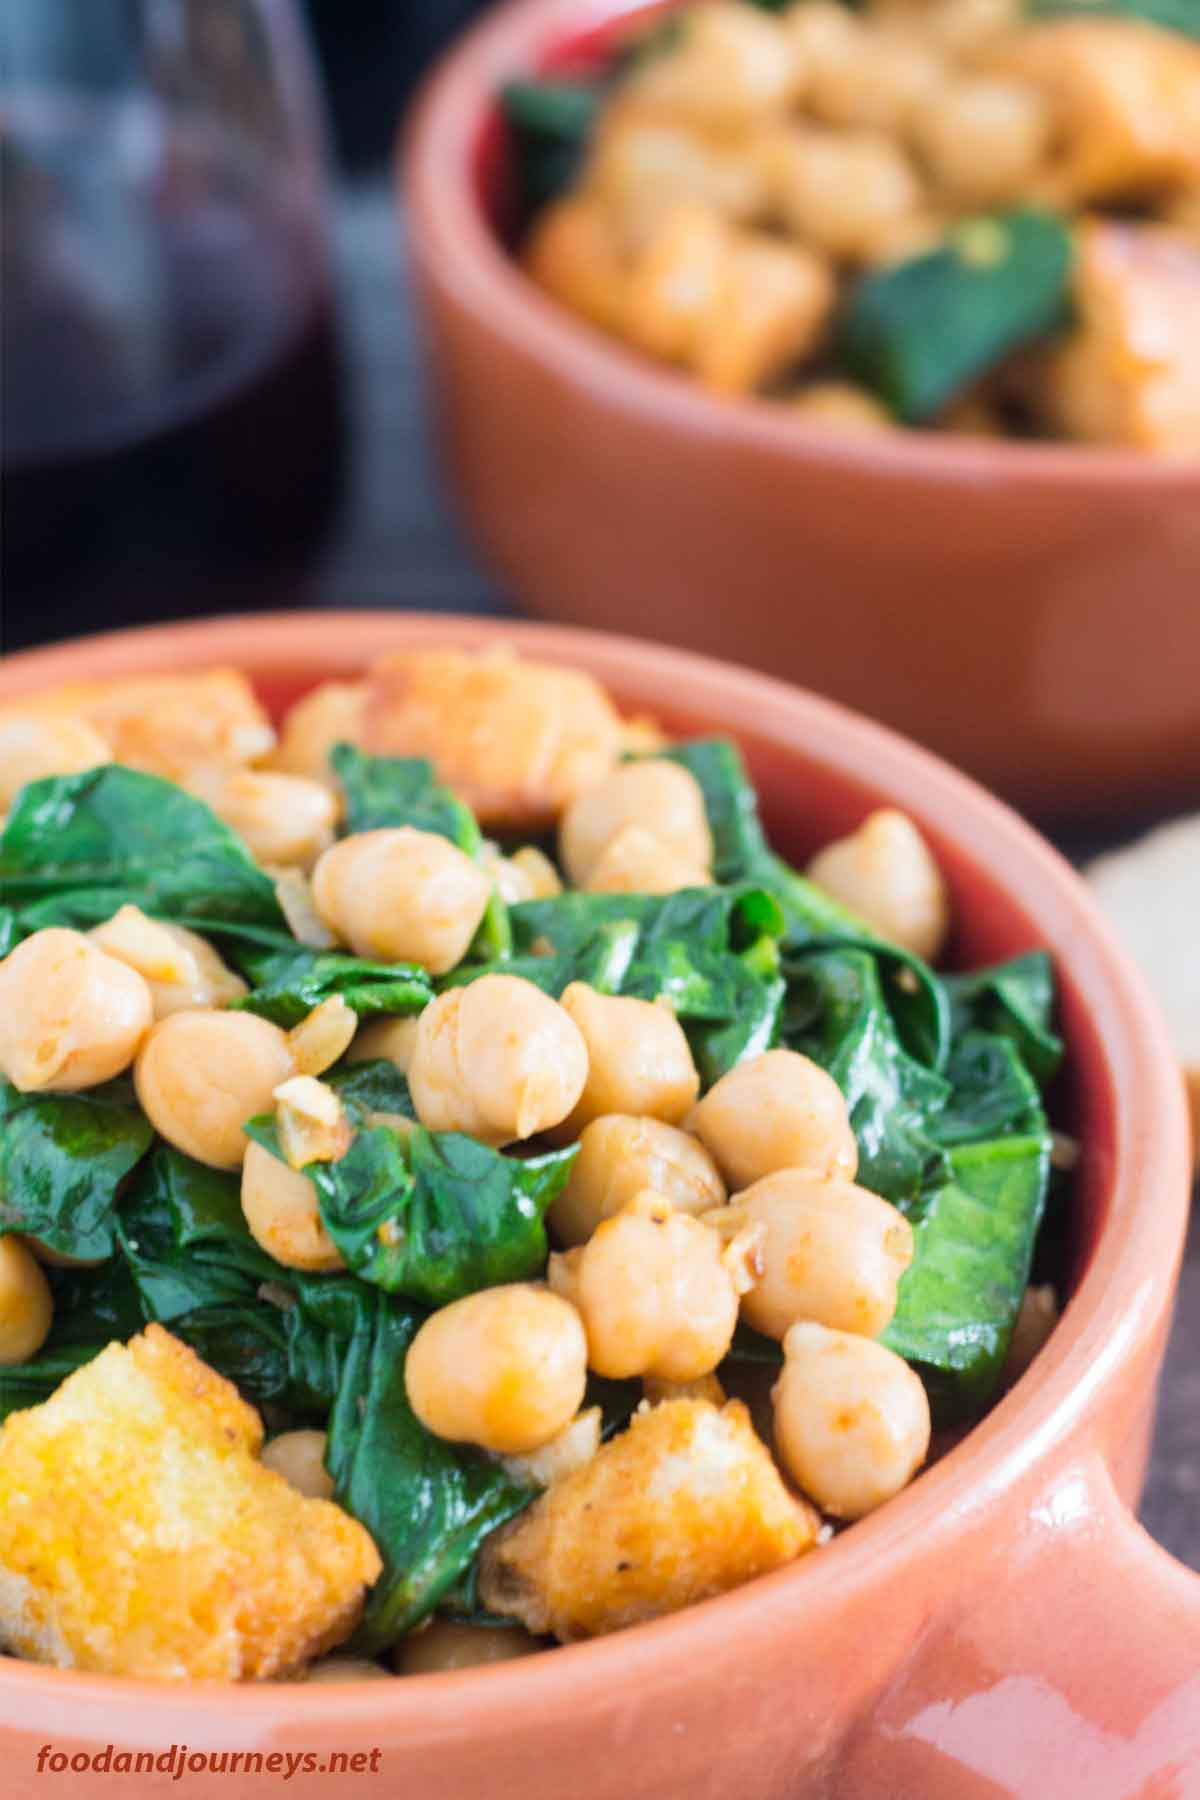 Closer shot of Spanish Spinach with Chickpeas (Espinacas con Garbanzos)|foodandjourneys.net